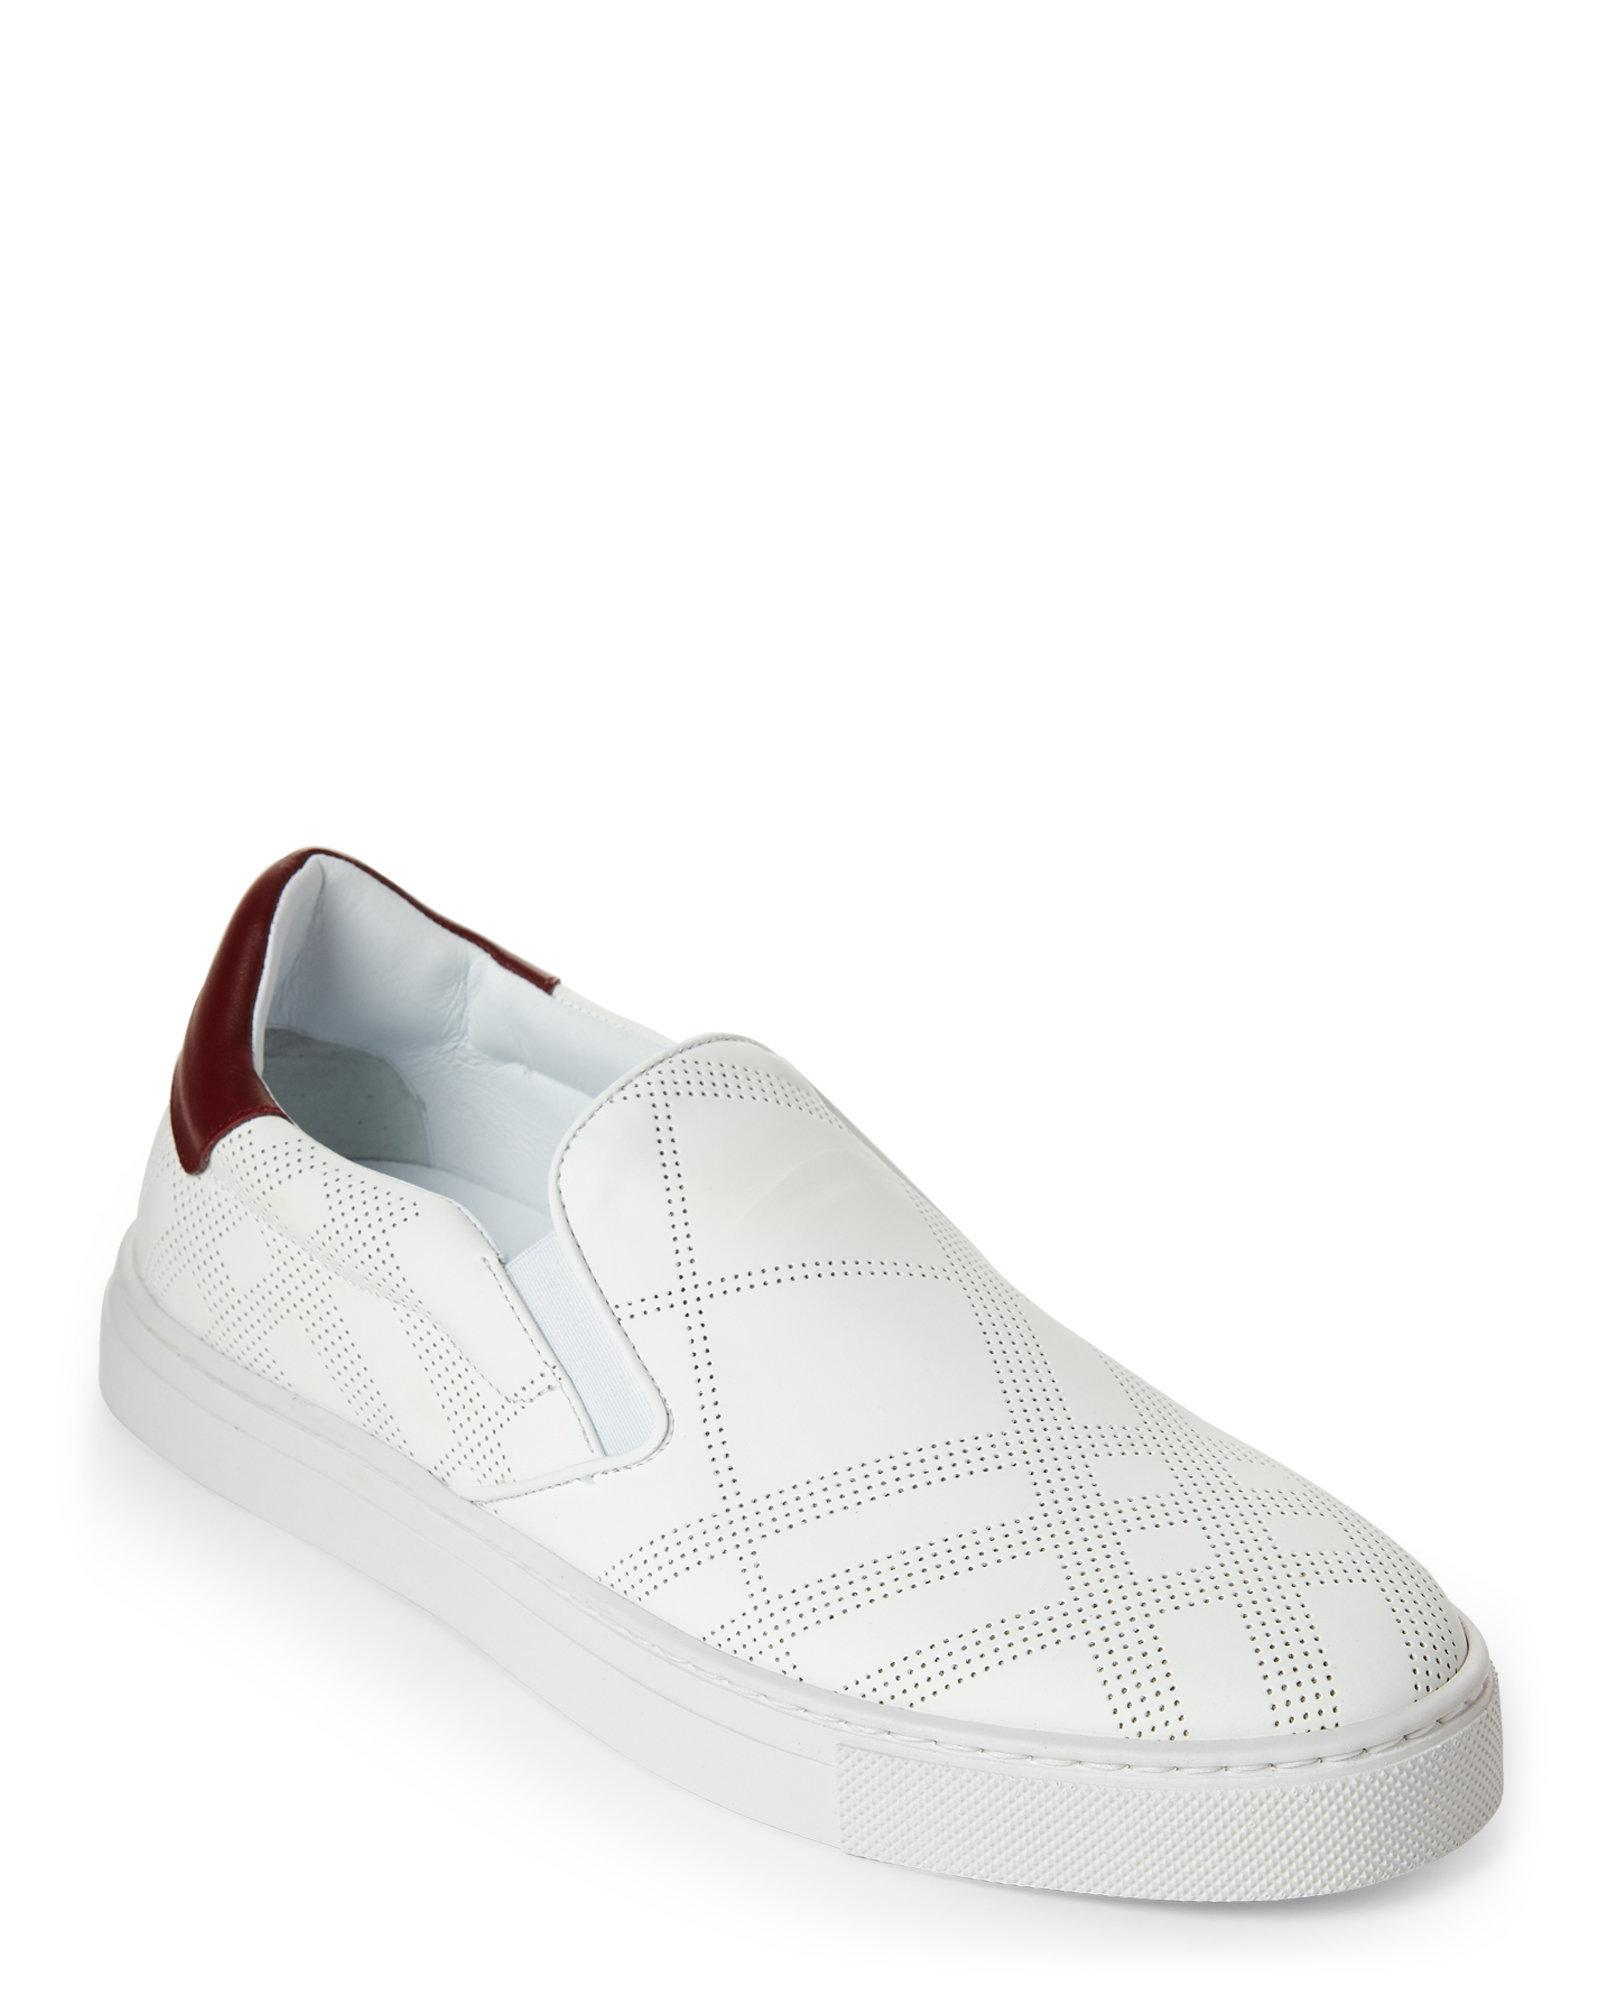 Burberry. Men's Optic White Copford Perforated Check Slip On Sneakers